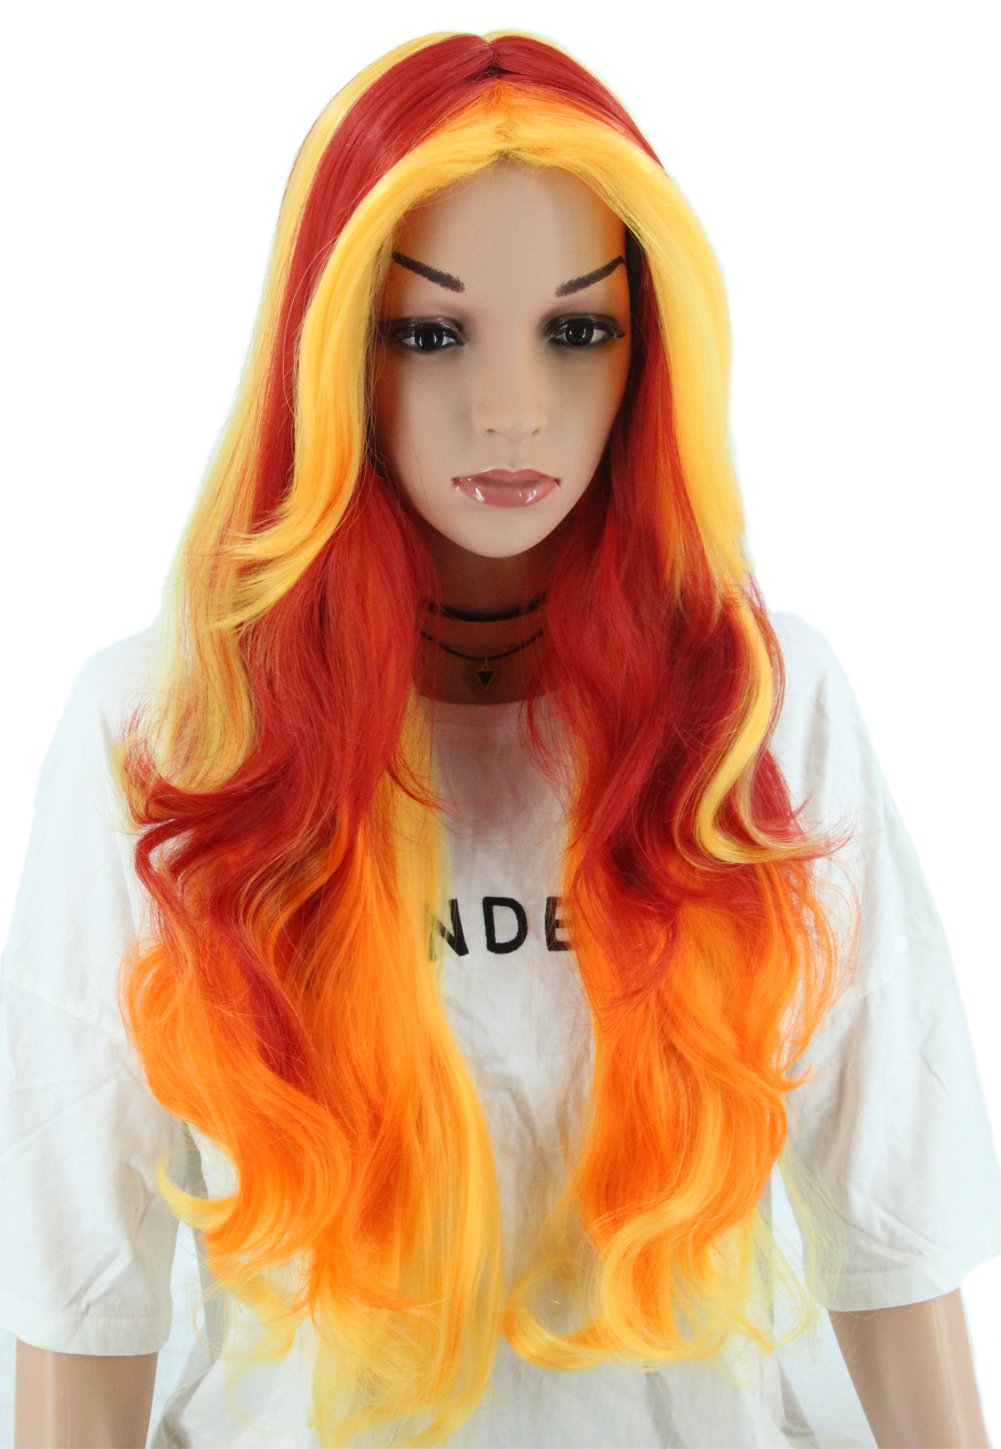 Amazon.com  Topcosplay Women Wigs Long Wave Fire Wig Ombre Colorful Wigs  Halloween Costume Cosplay Wig Red Orange Yellow  Beauty 147b38c72ab0